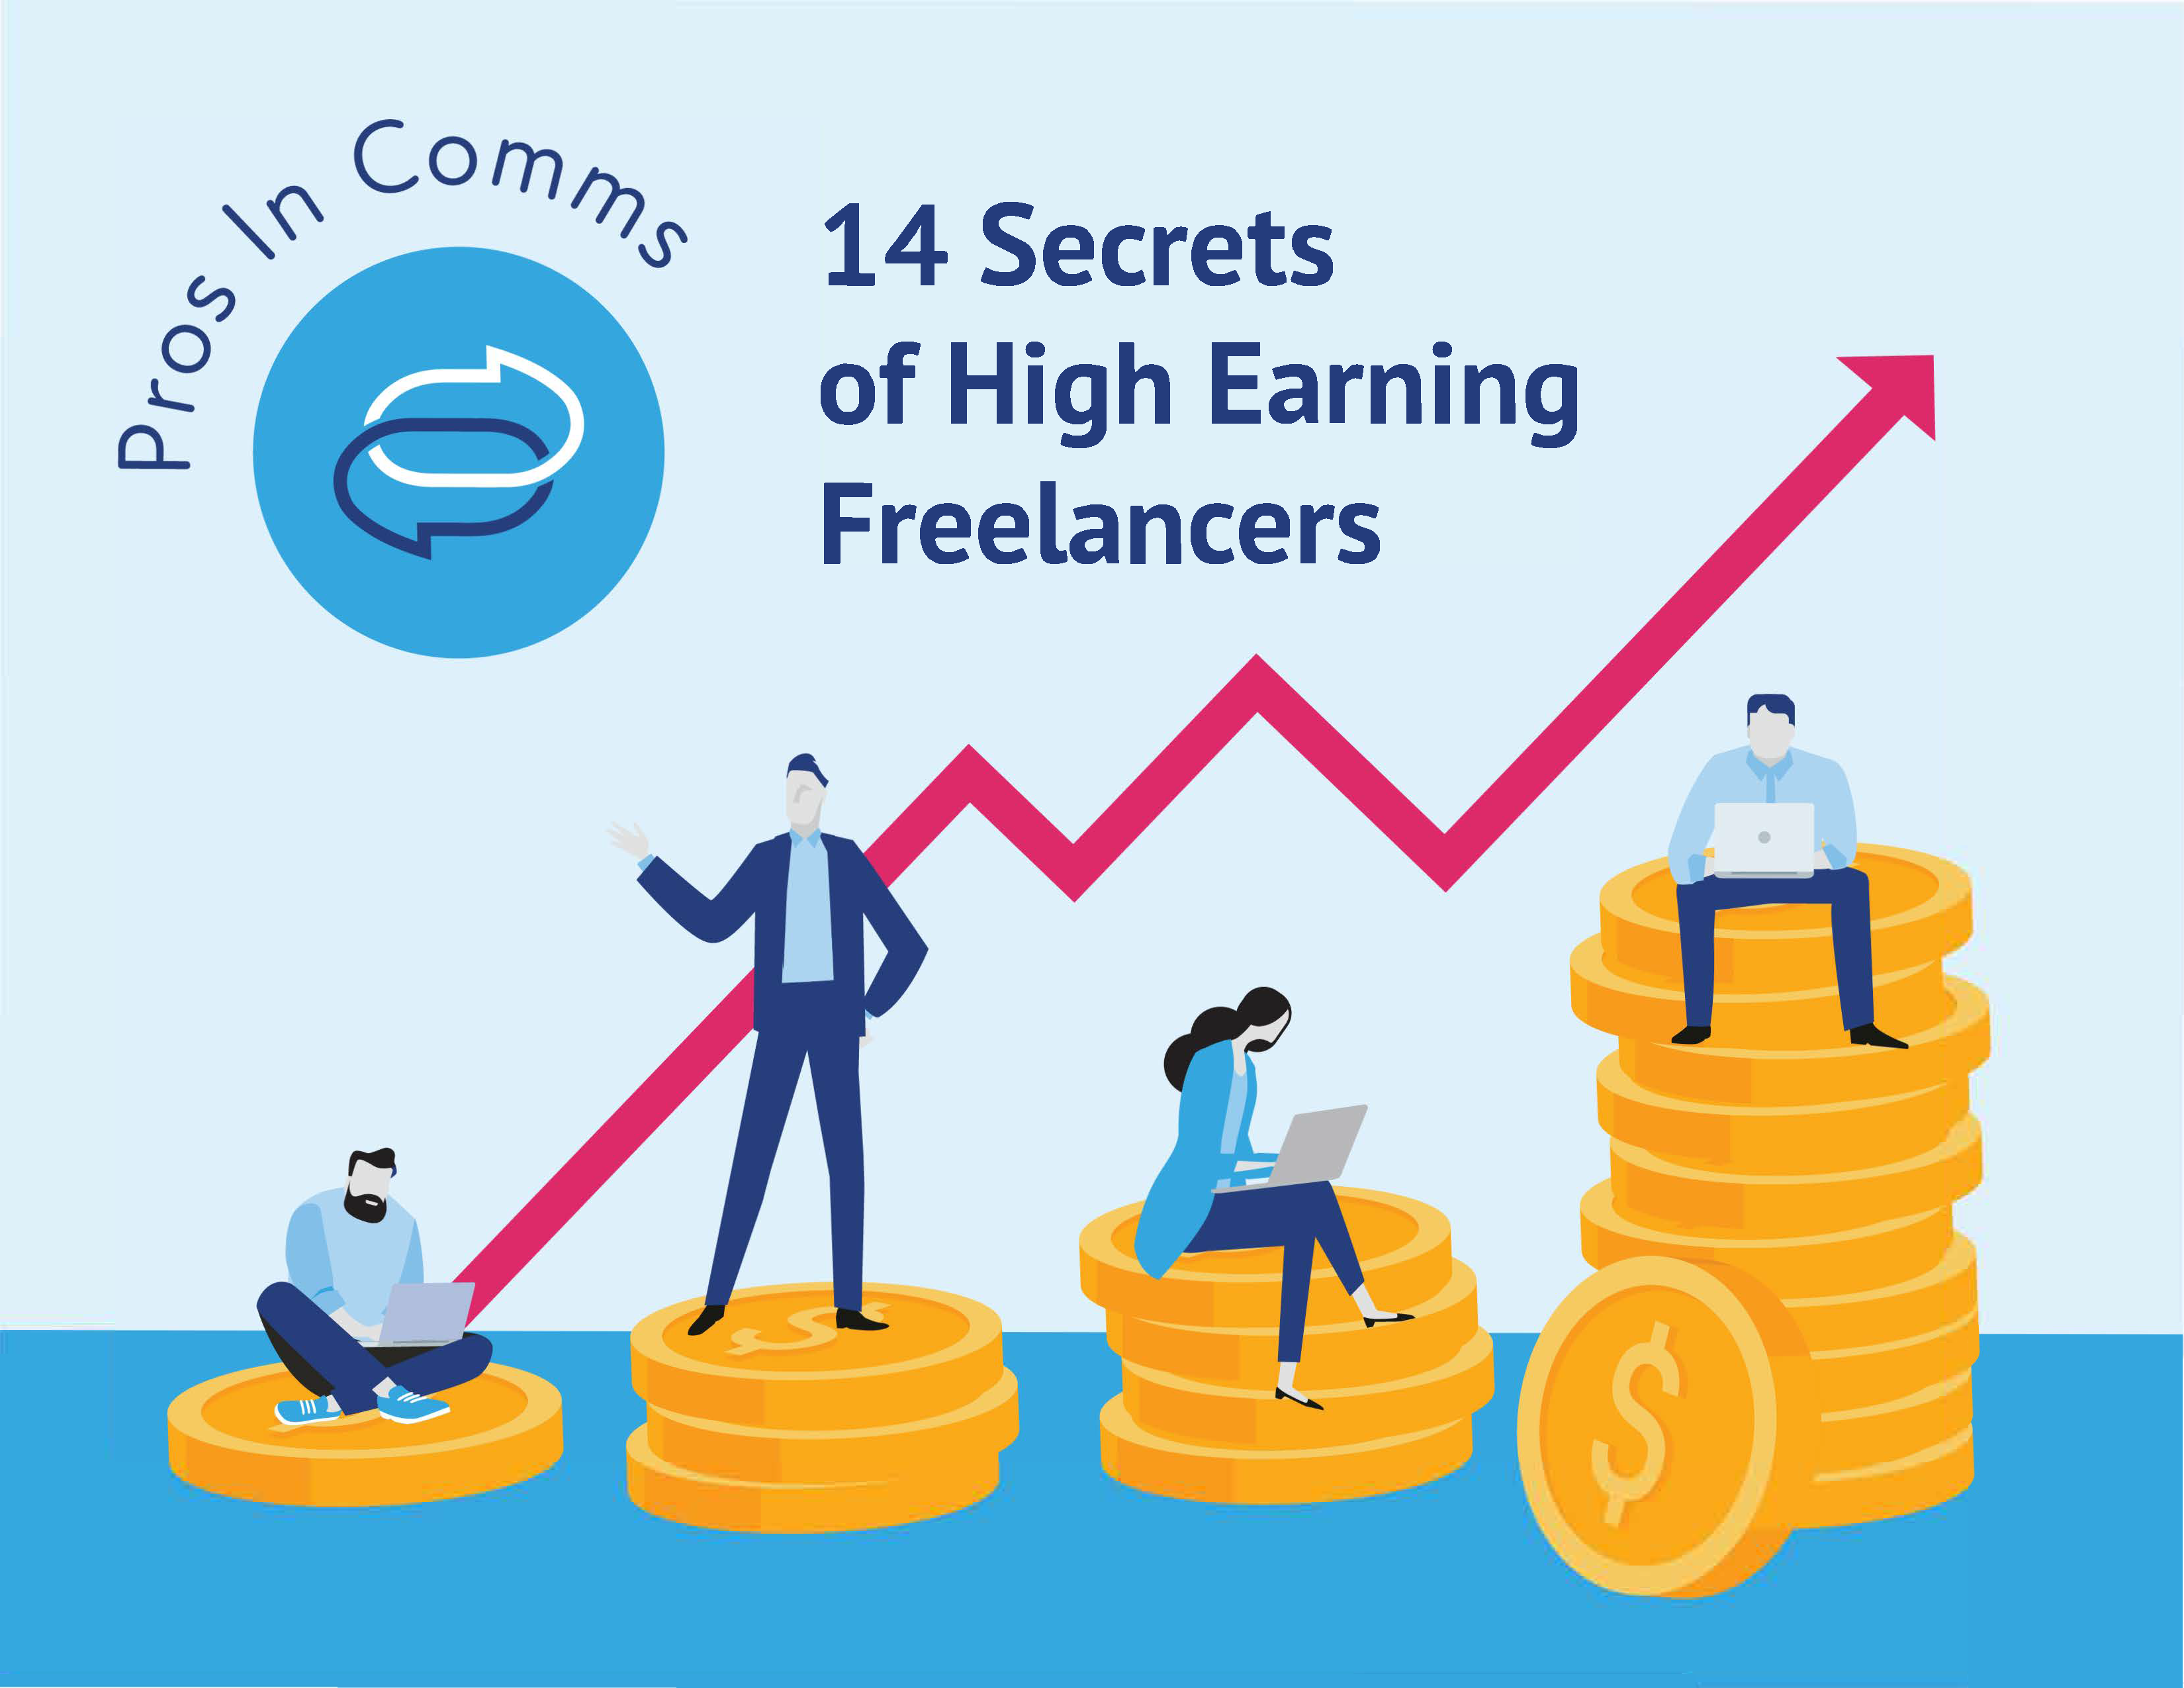 secrets-of-high-earning-freelancers